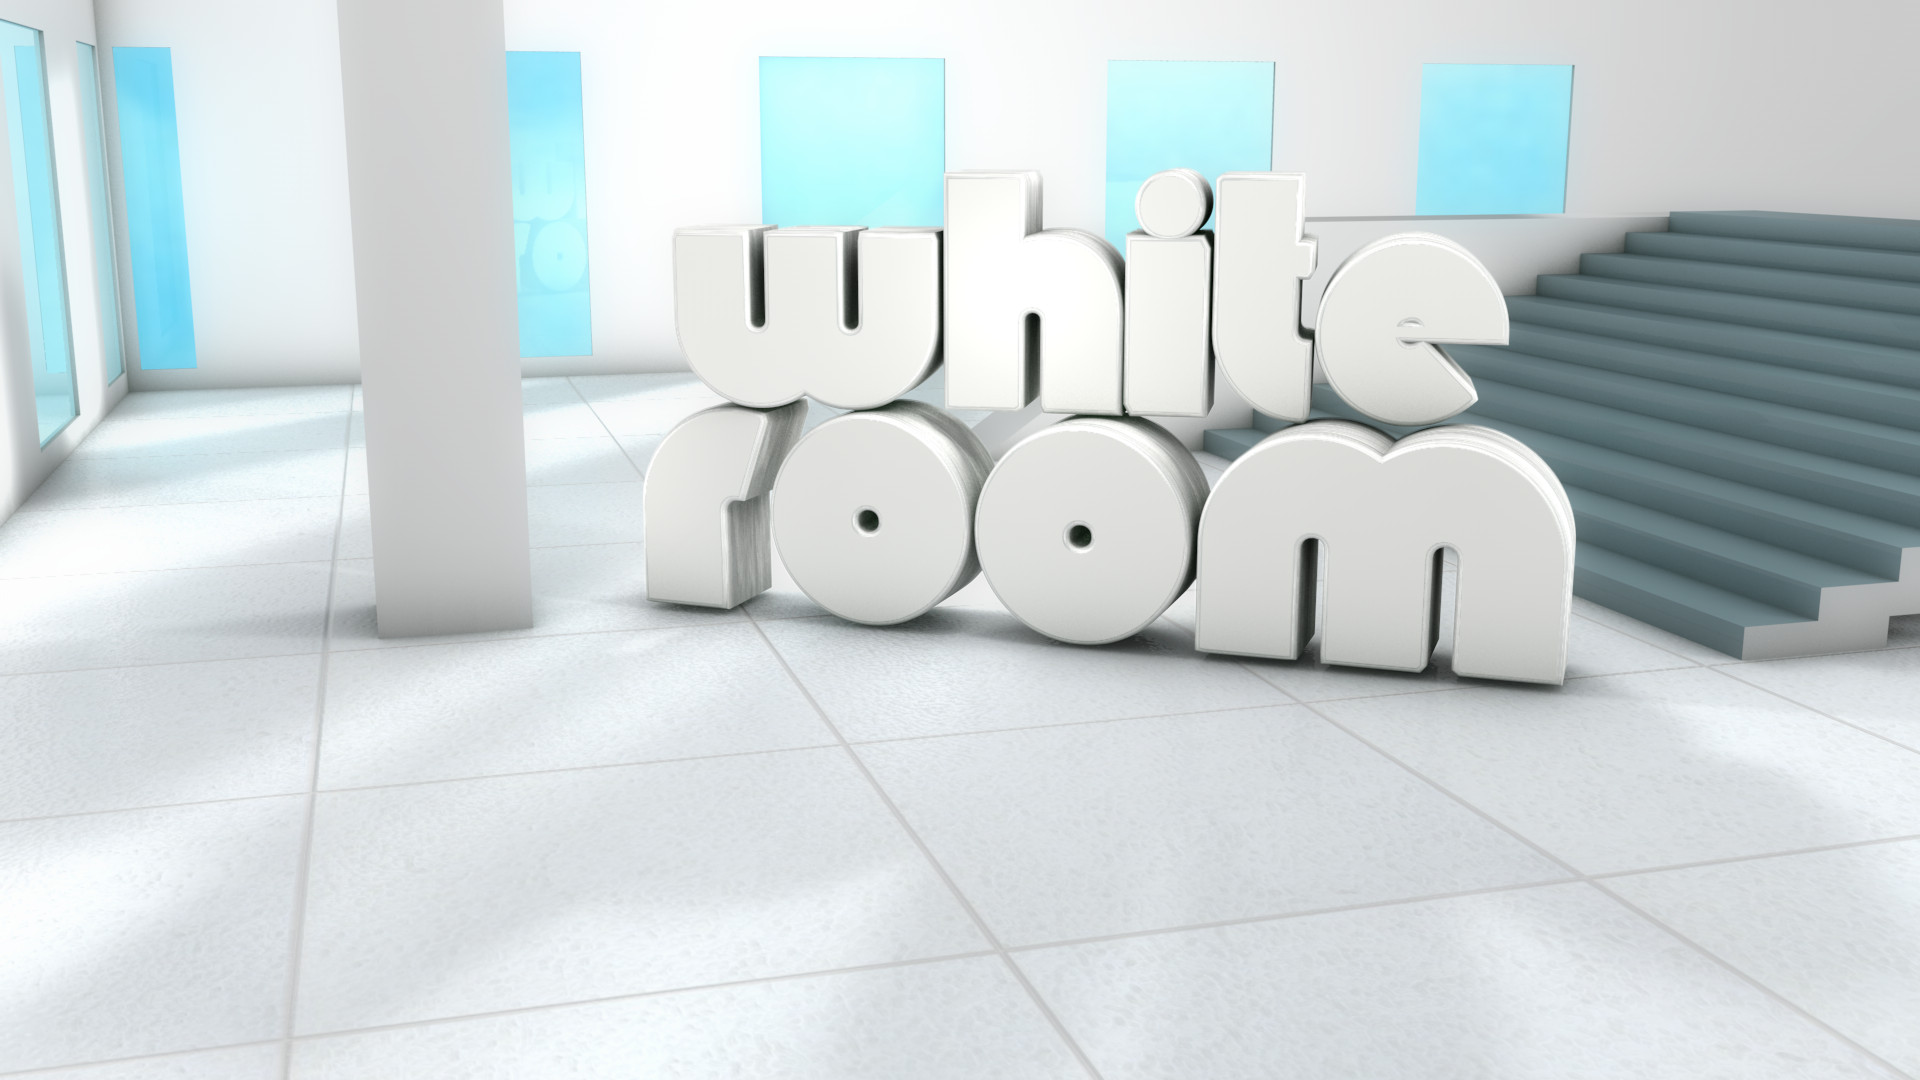 Cinema 4D -- WhiteRoom by SMOKEYoriginalHD